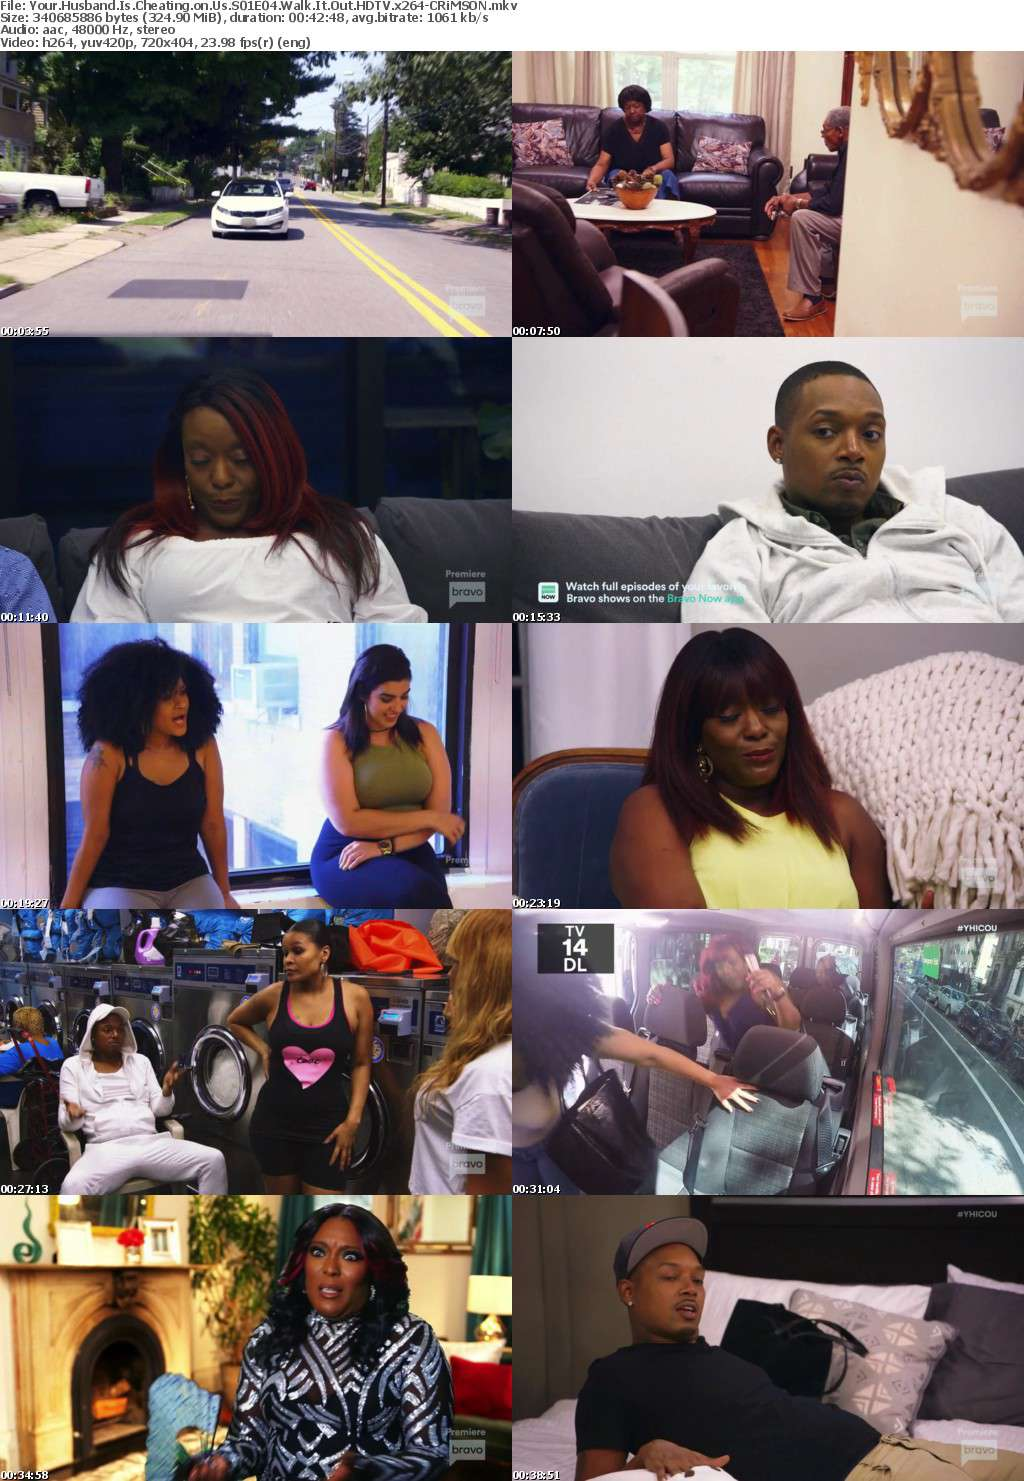 Your Husband Is Cheating on Us S01E04 Walk It Out HDTV x264-CRiMSON